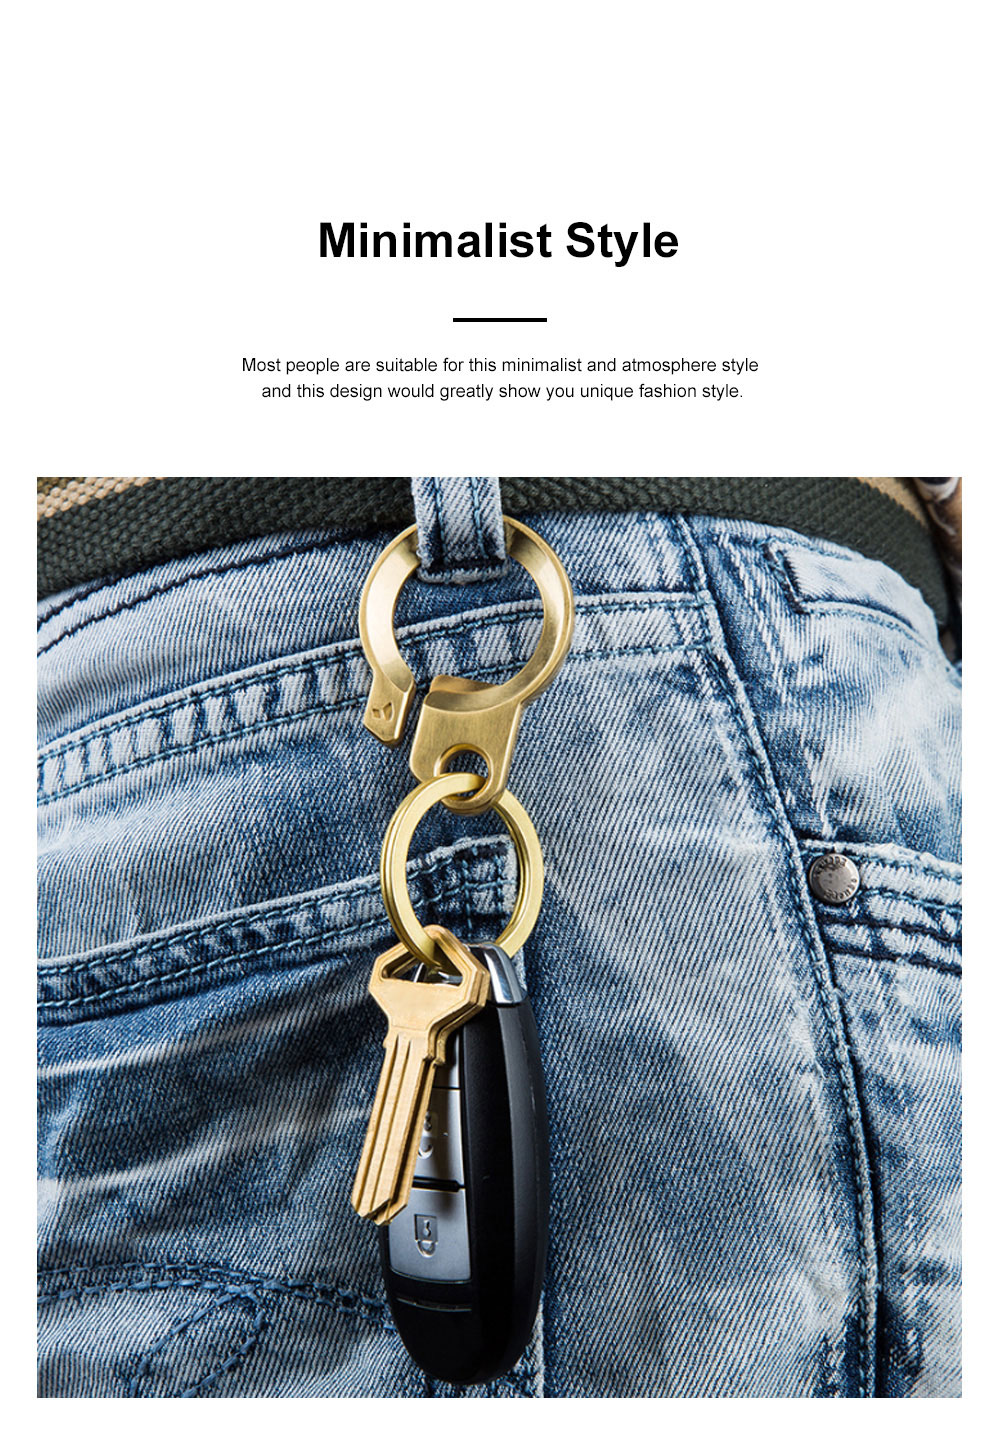 Creative Fancy Delicate Brass Copper Car Key Chain Ring Minimalist Atmosphere Convenient Functional Bottle Opener Waist Key Chain Creative Key Ring Opener 1